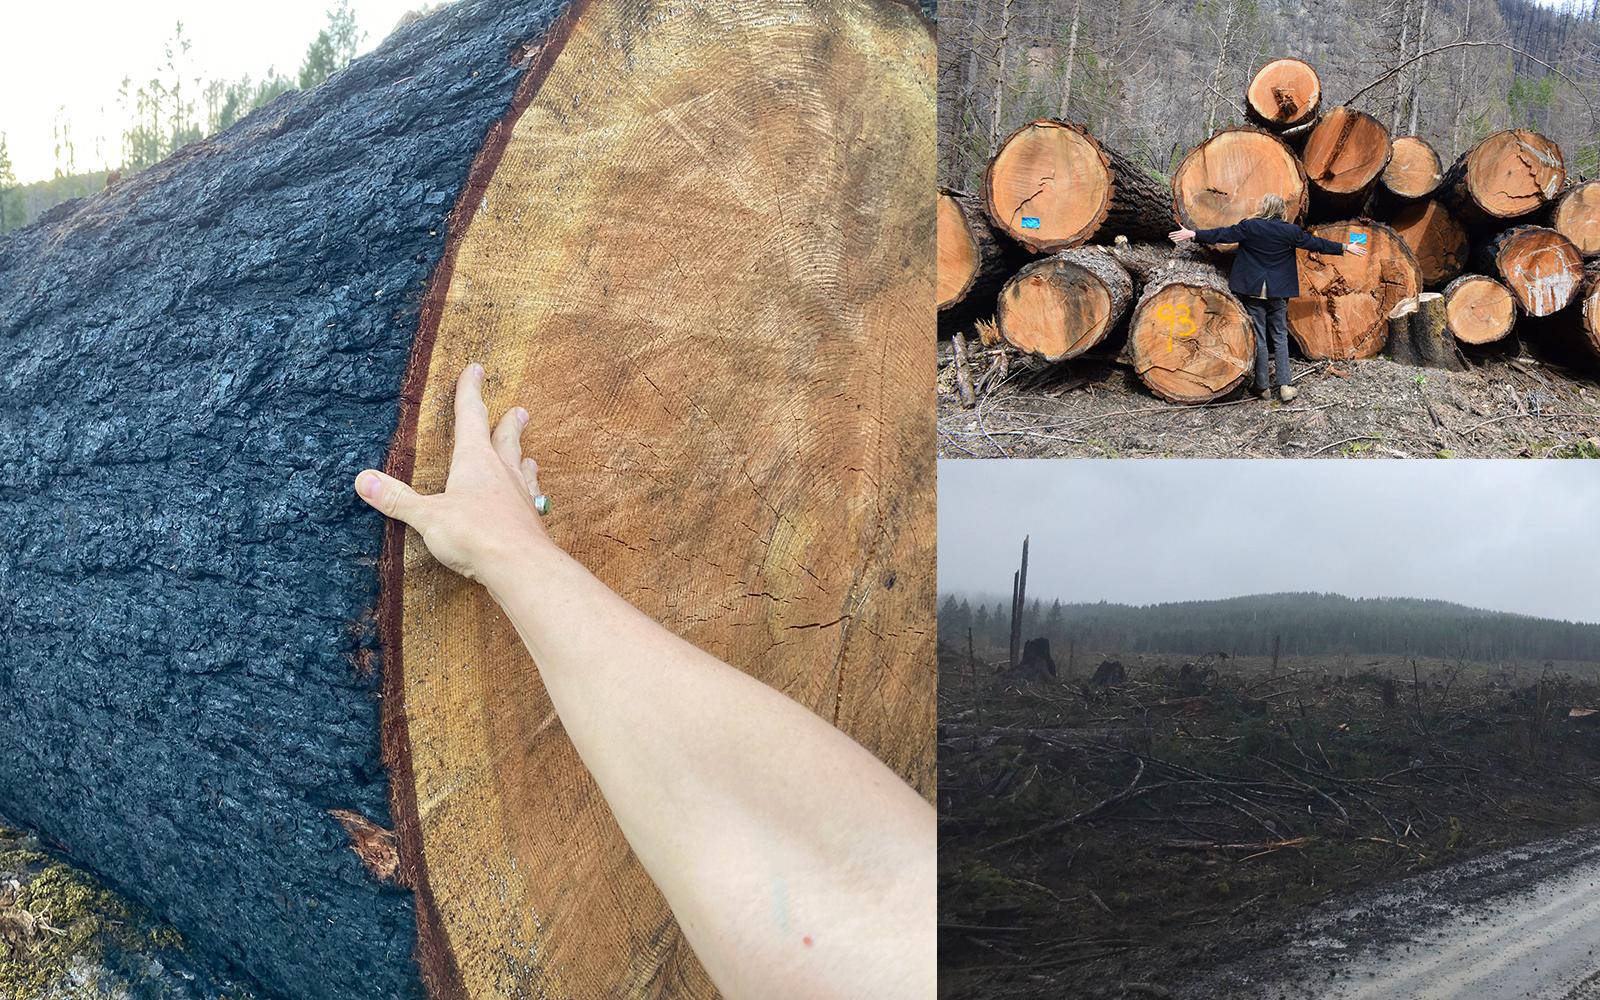 Press Release: CW Appeals ODOT's $87,000 Bill for Post-Fire Hazard Tree Removal Public Records Request